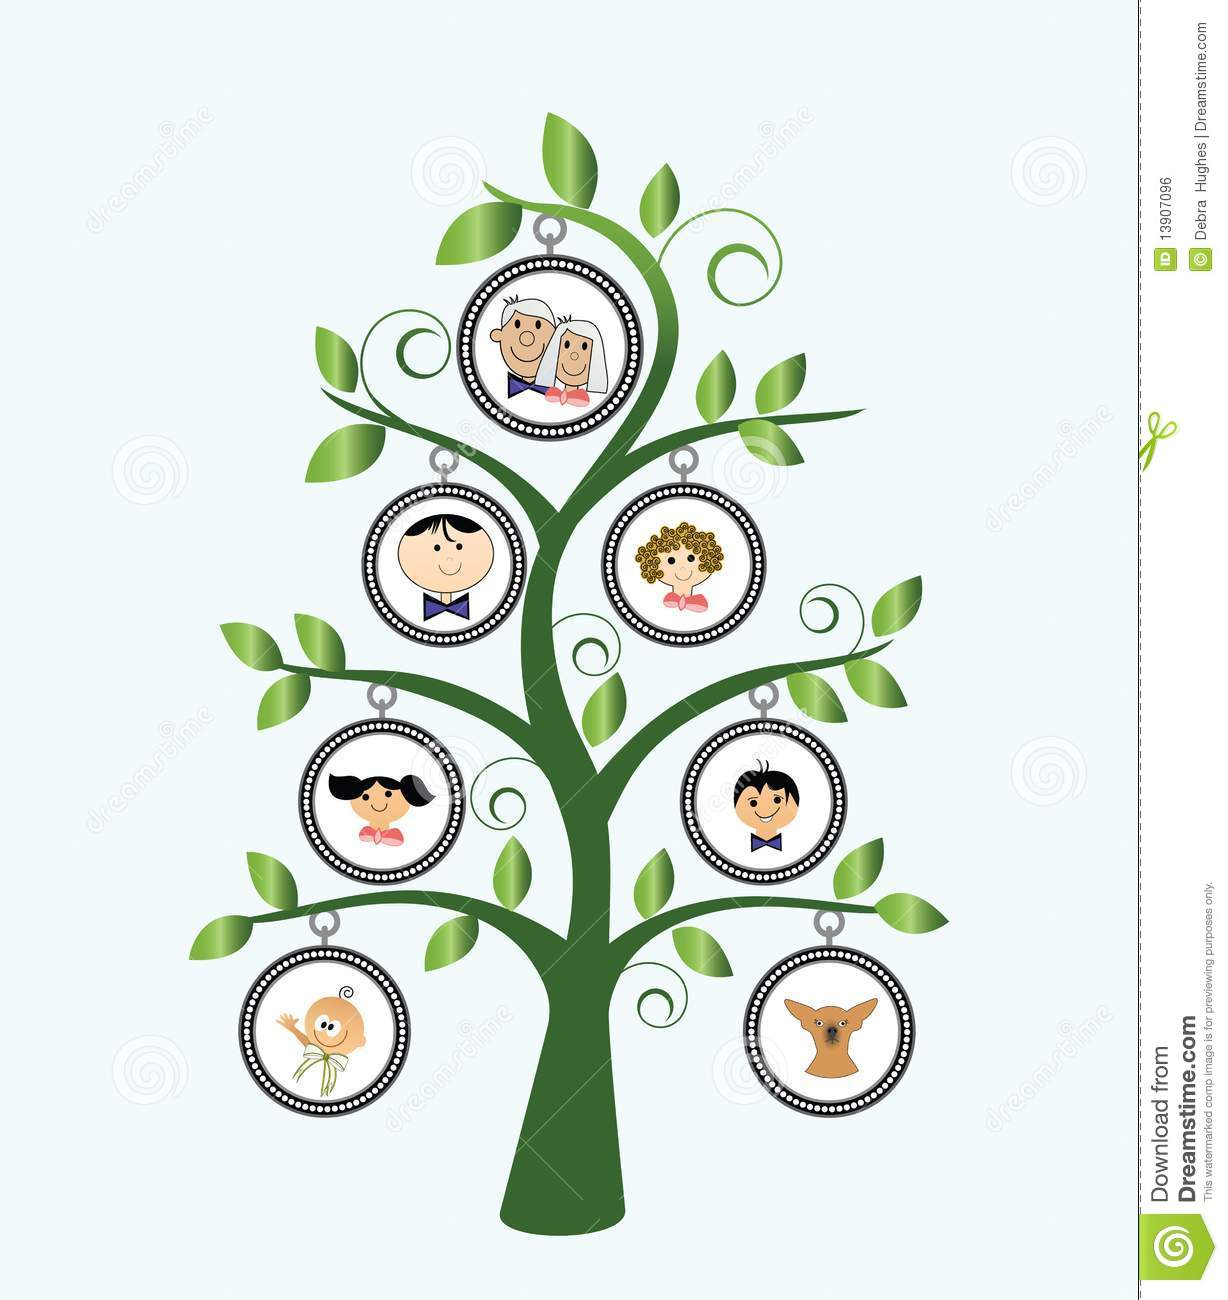 Arbre Genealogique Illustration De Vecteur Illustration